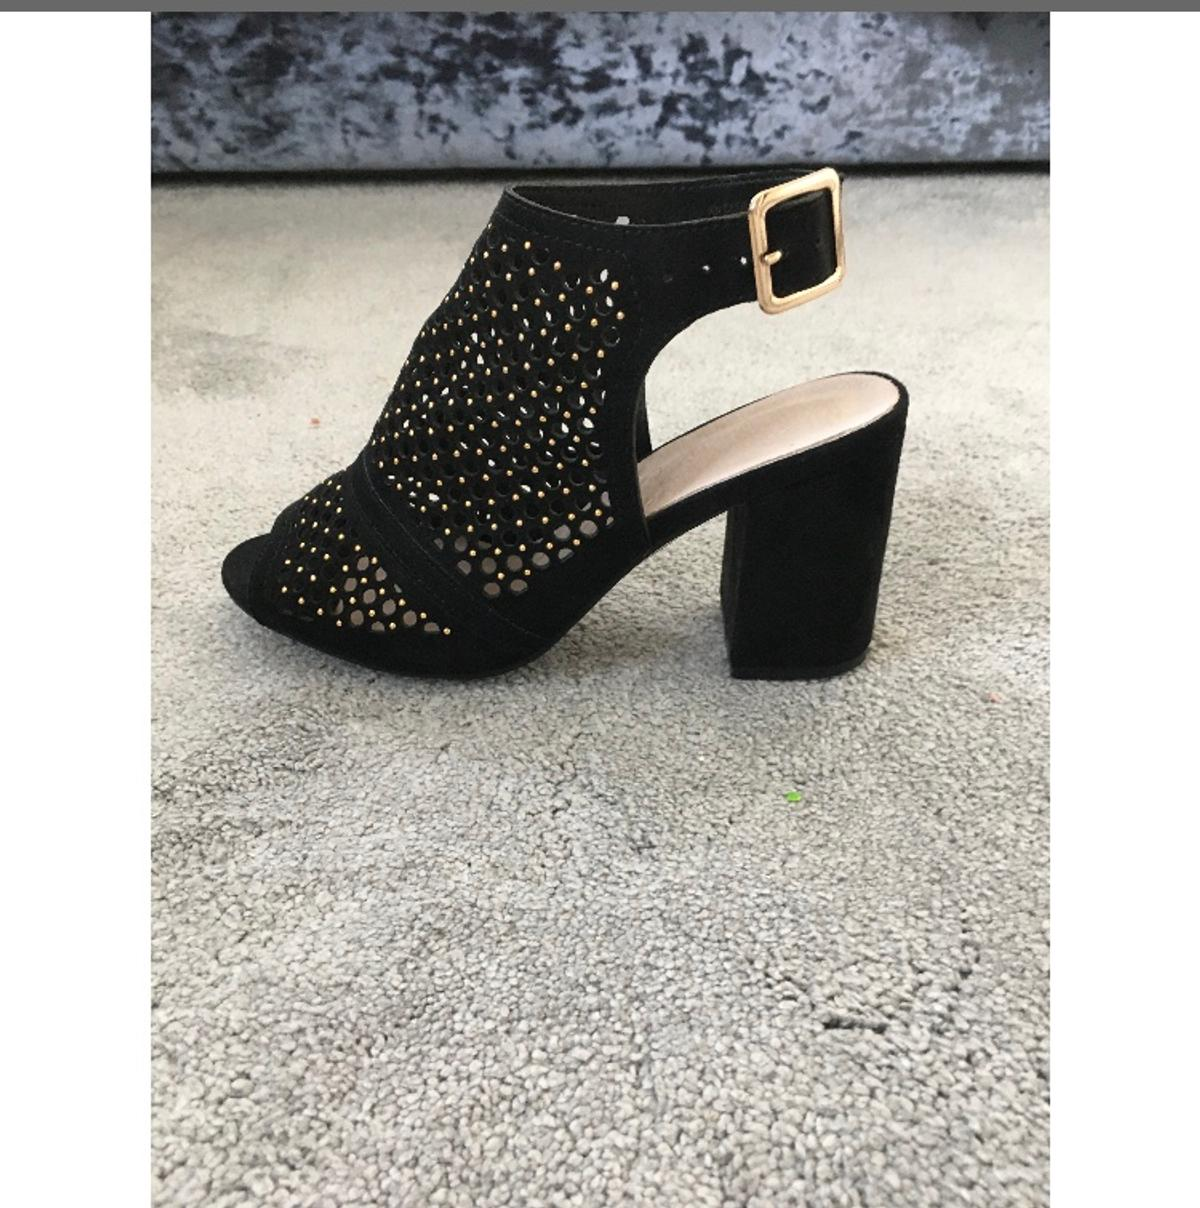 Black and gold heeled sandals. Open toe and open heel. Worn once. Size 3.